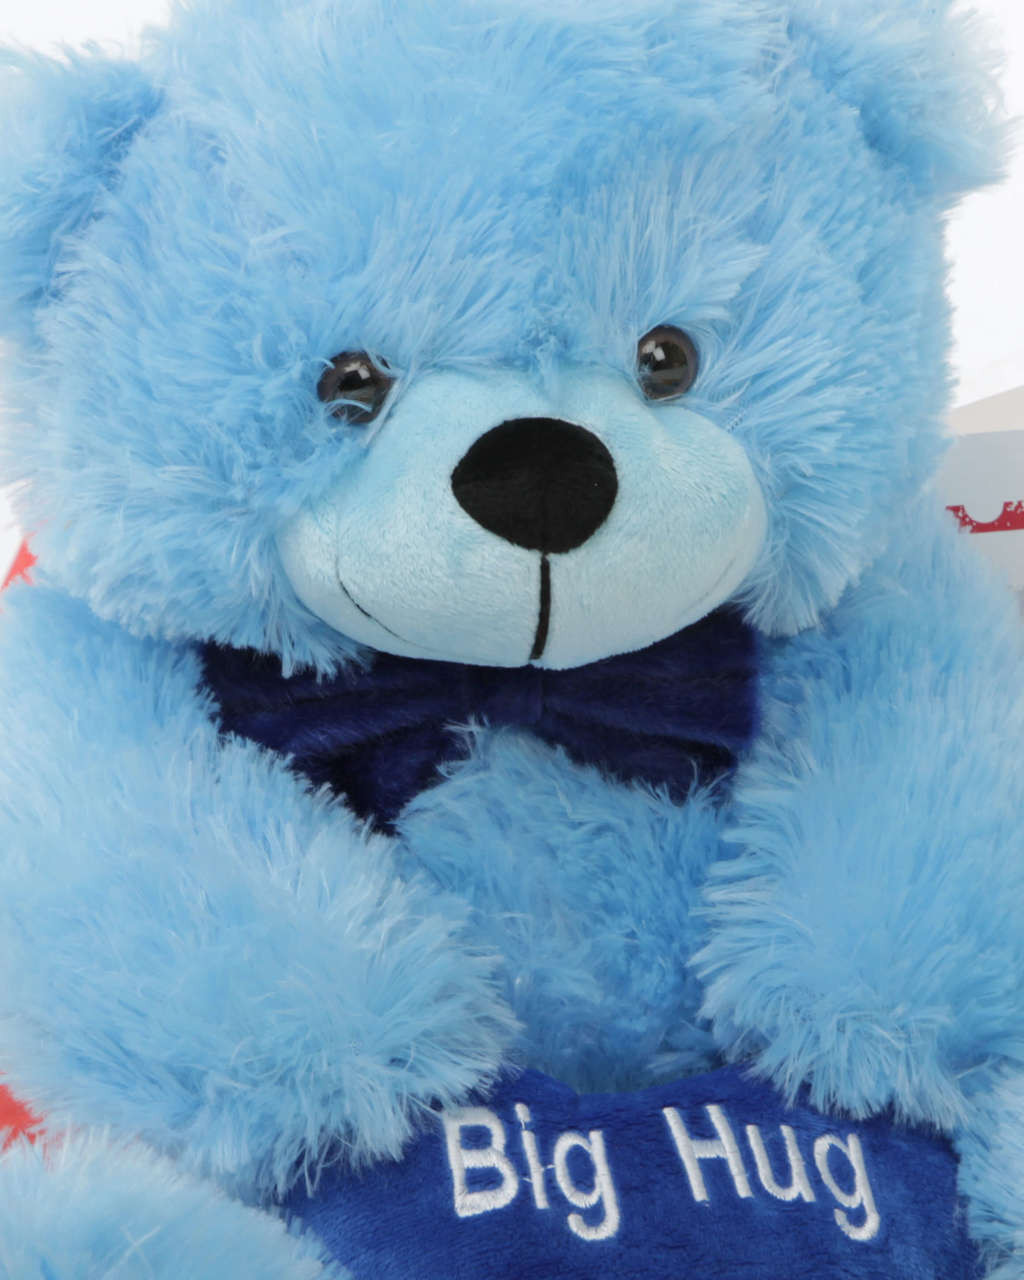 Hug Care Package with Happy Cuddles Blue Teddy Bear